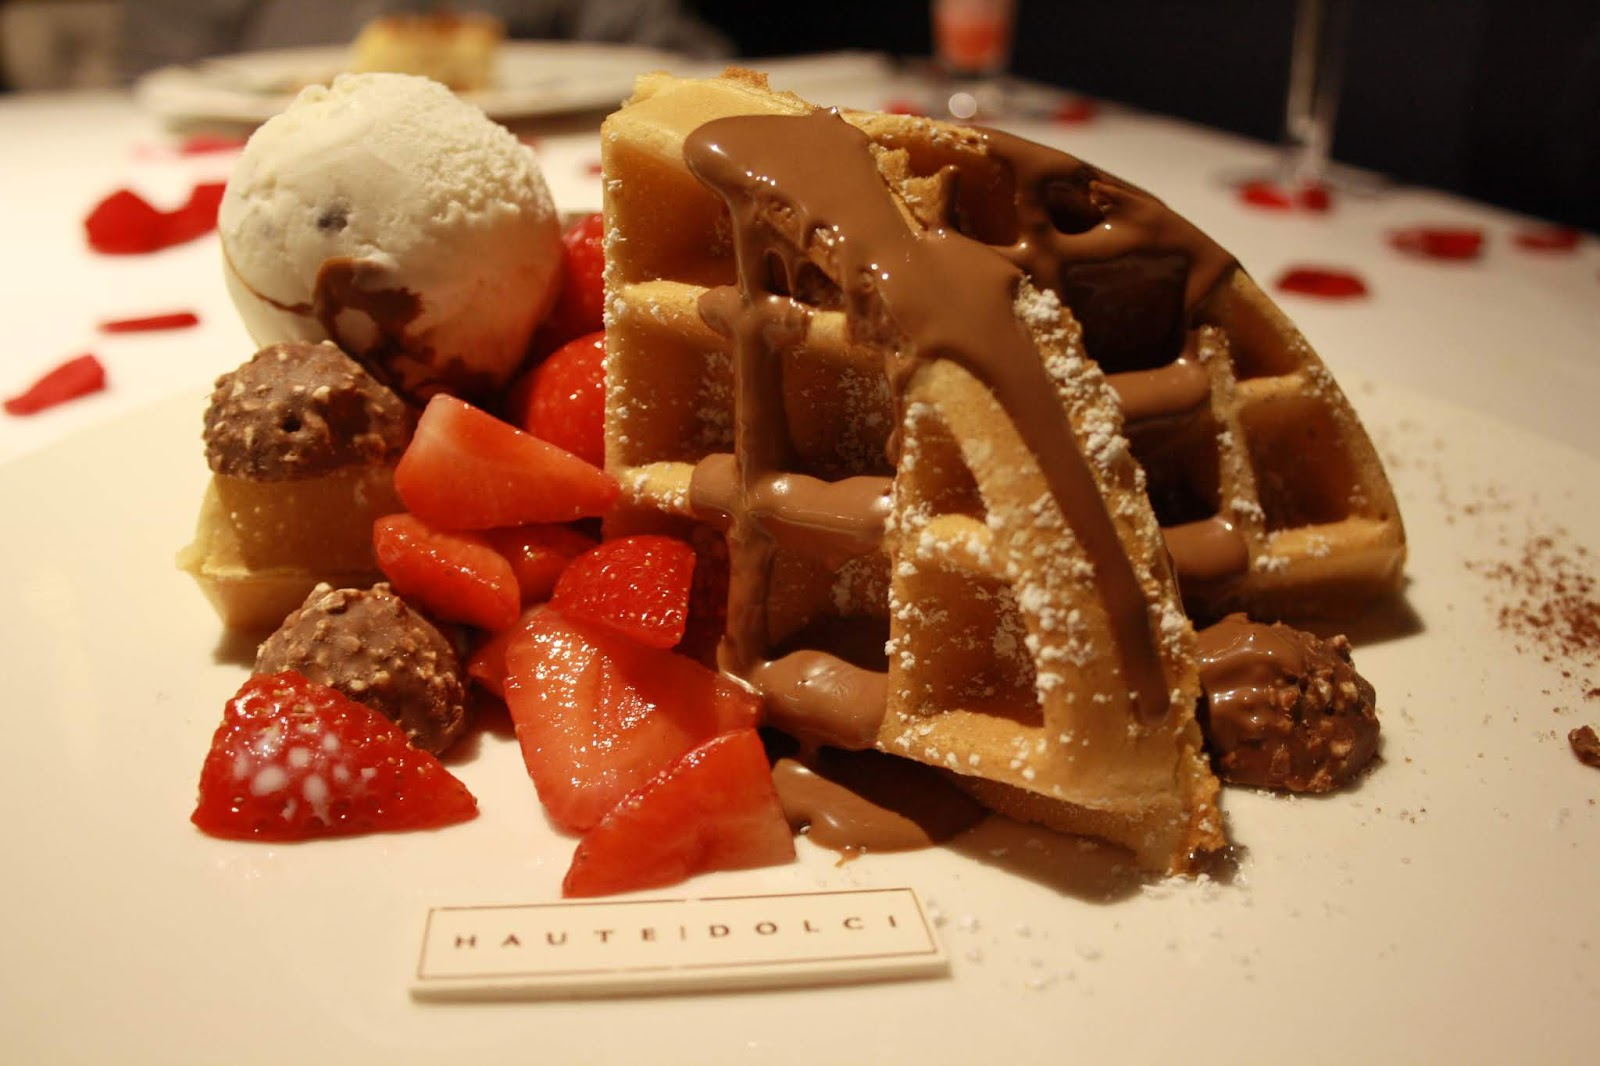 American style waffle with chocolate sauce, Ferrero ocher, strawberries and ice cream